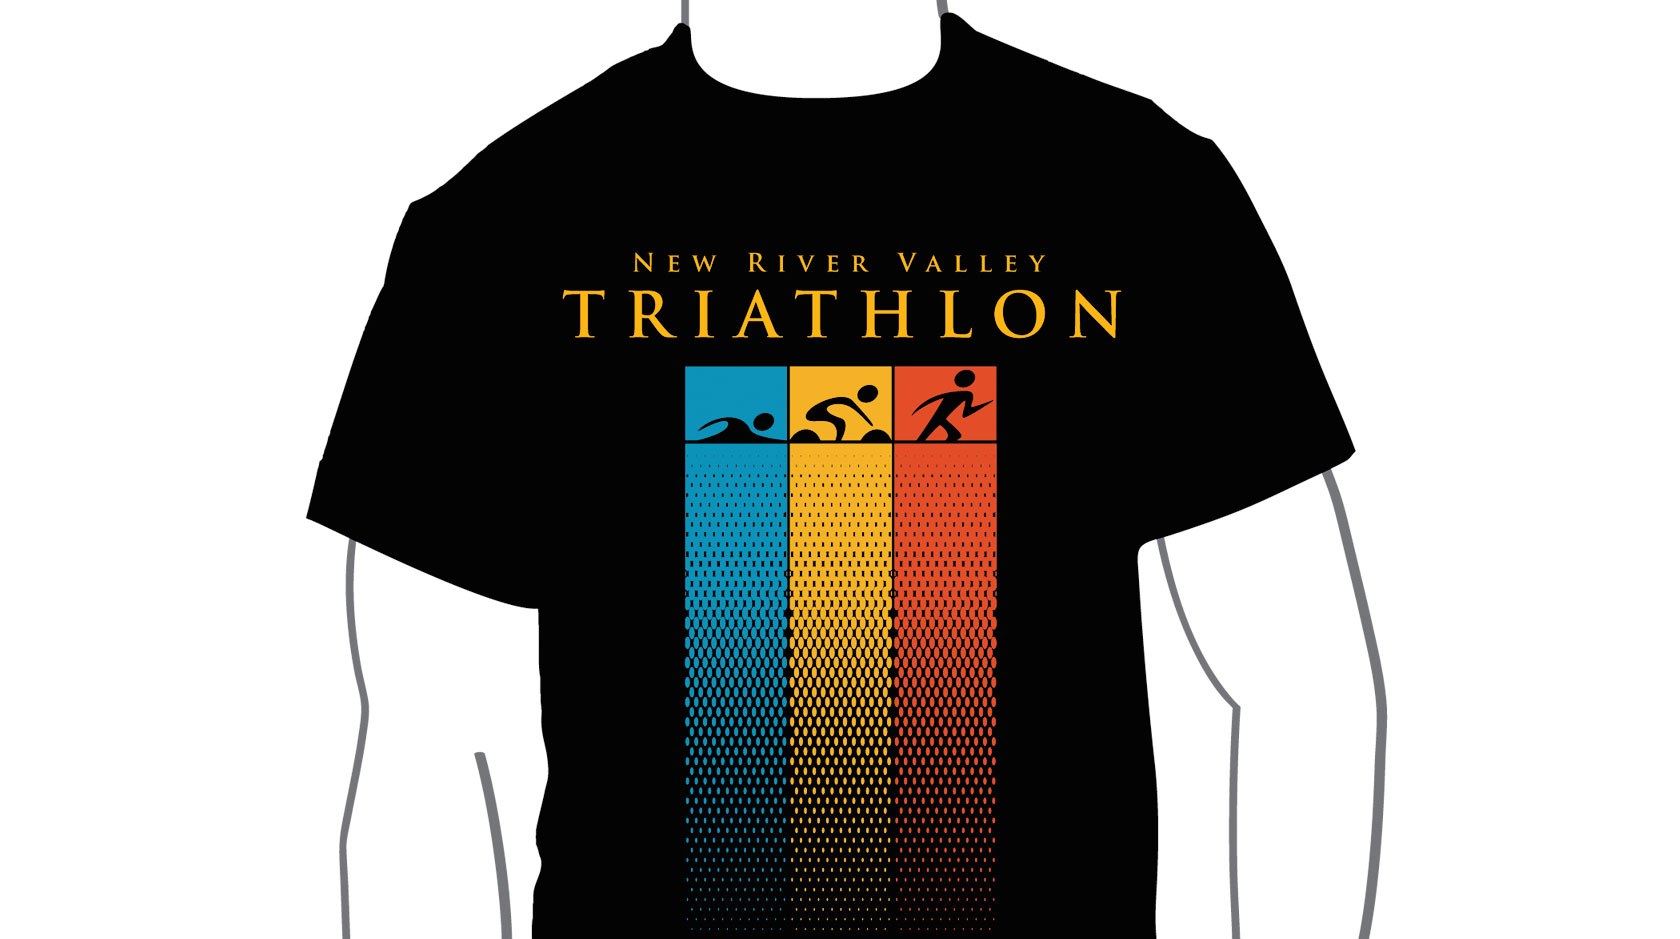 Triathlon Logo Design Nrv triathlon